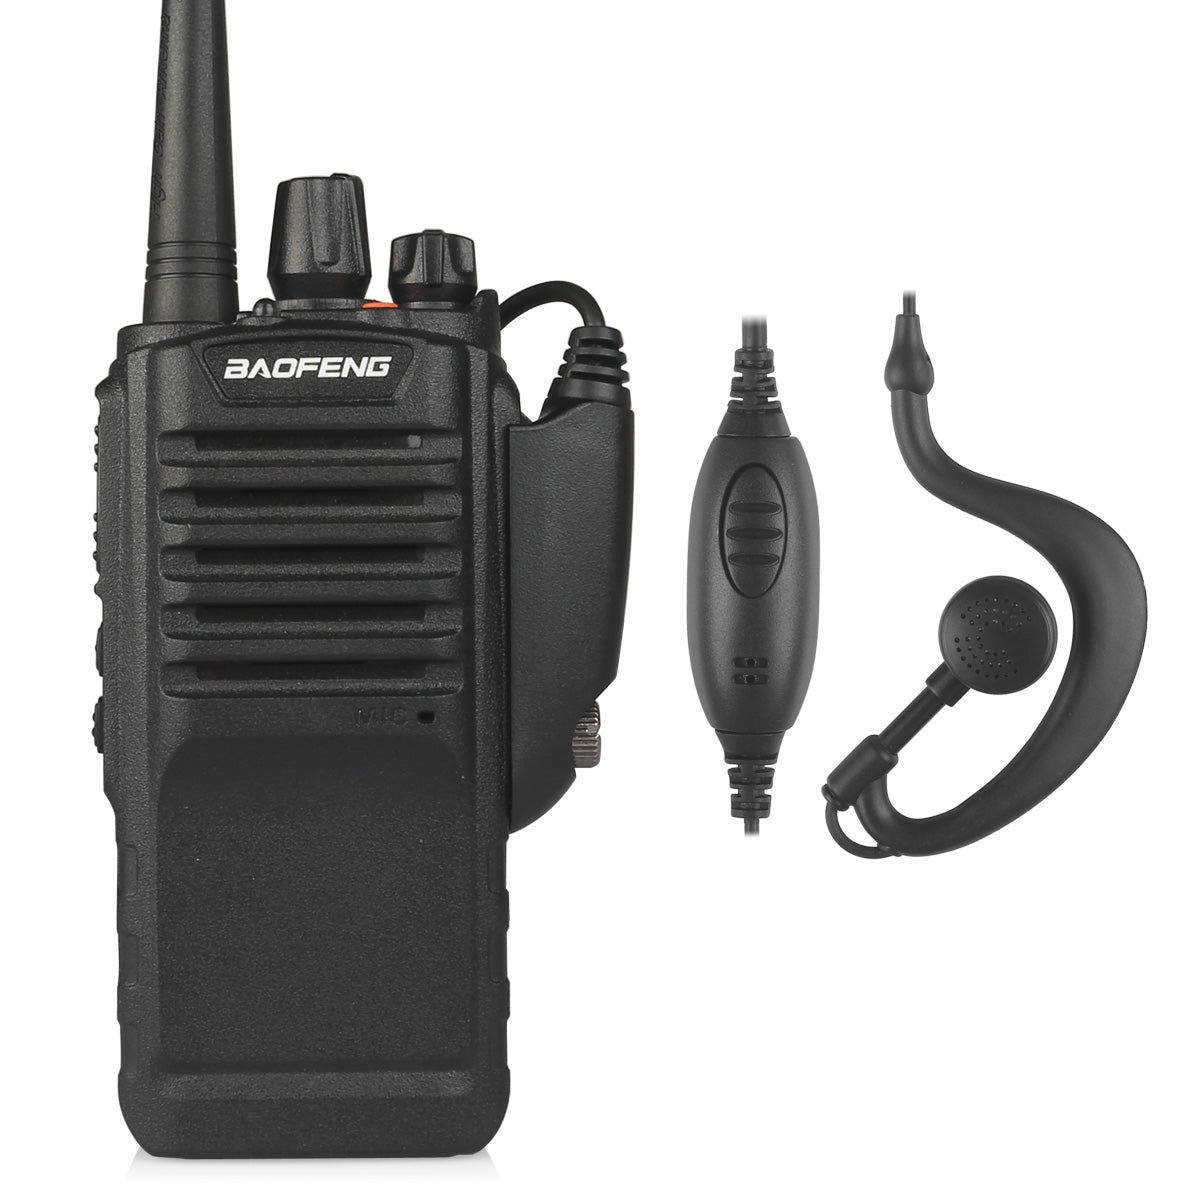 Baofeng BF-9700 | Dual Band | 7/5/1W | Waterpoof | Noise Reduction - Radioddity